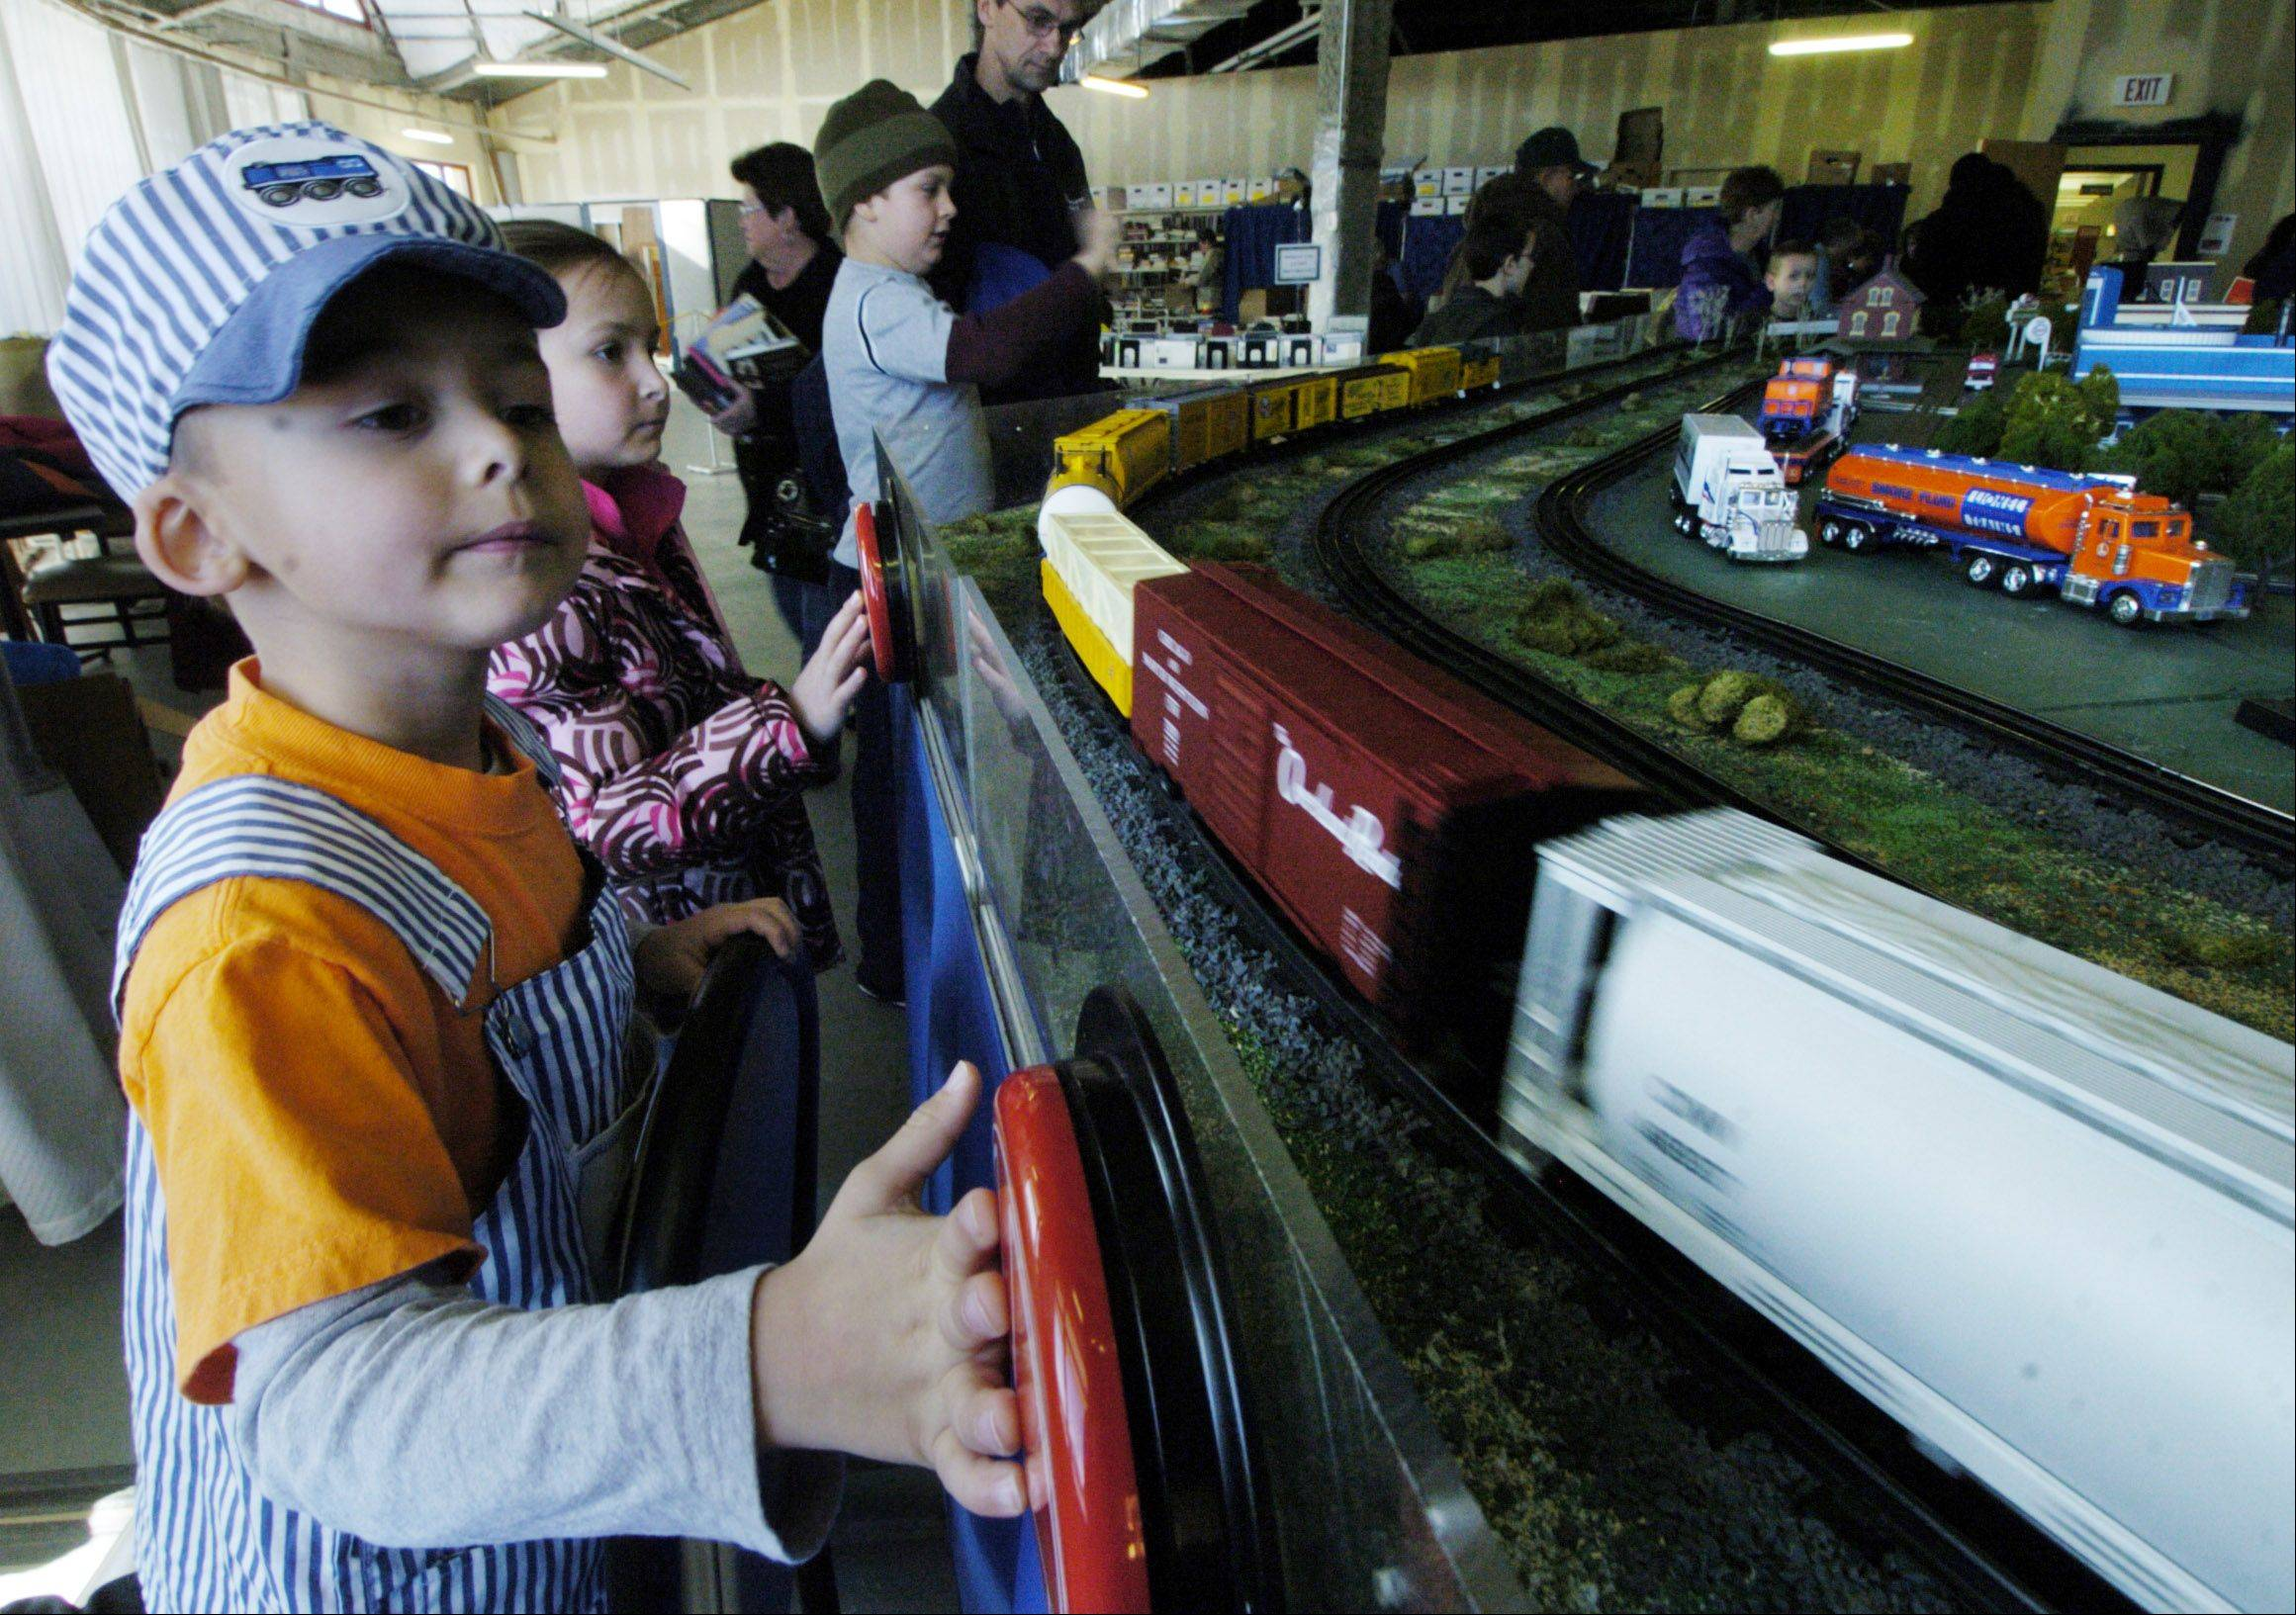 Ryan Phoenix, 5, of Mundelein watches a train pass as the North Central O Guagers railroad club holds a showing of its layout at the Fremont Public Library in Mundelein Saturday.